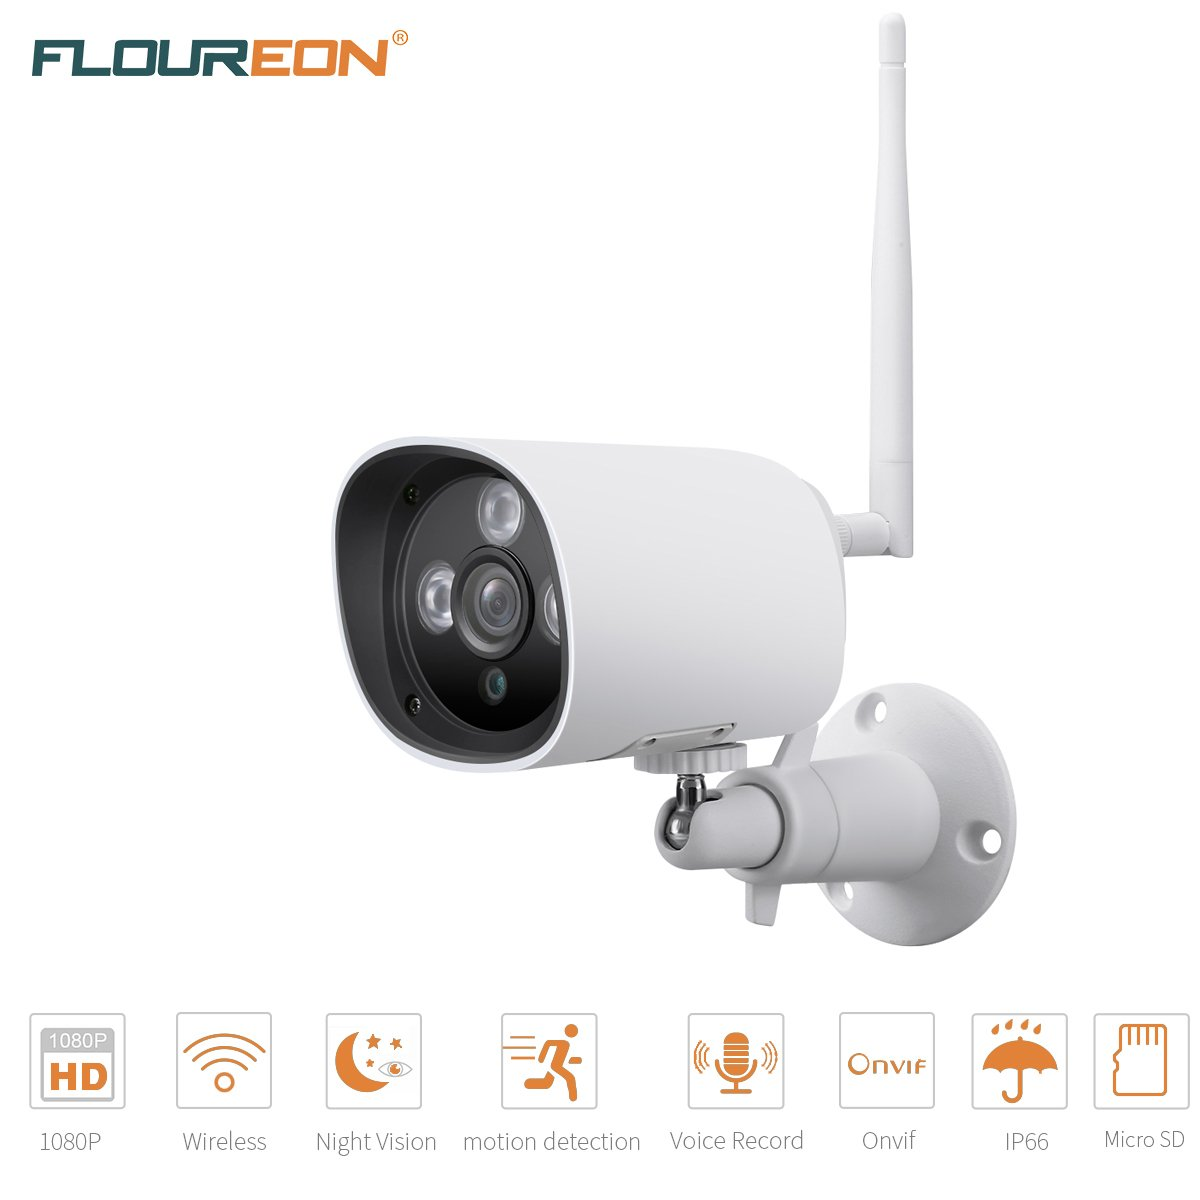 Floureon Cctv App Download